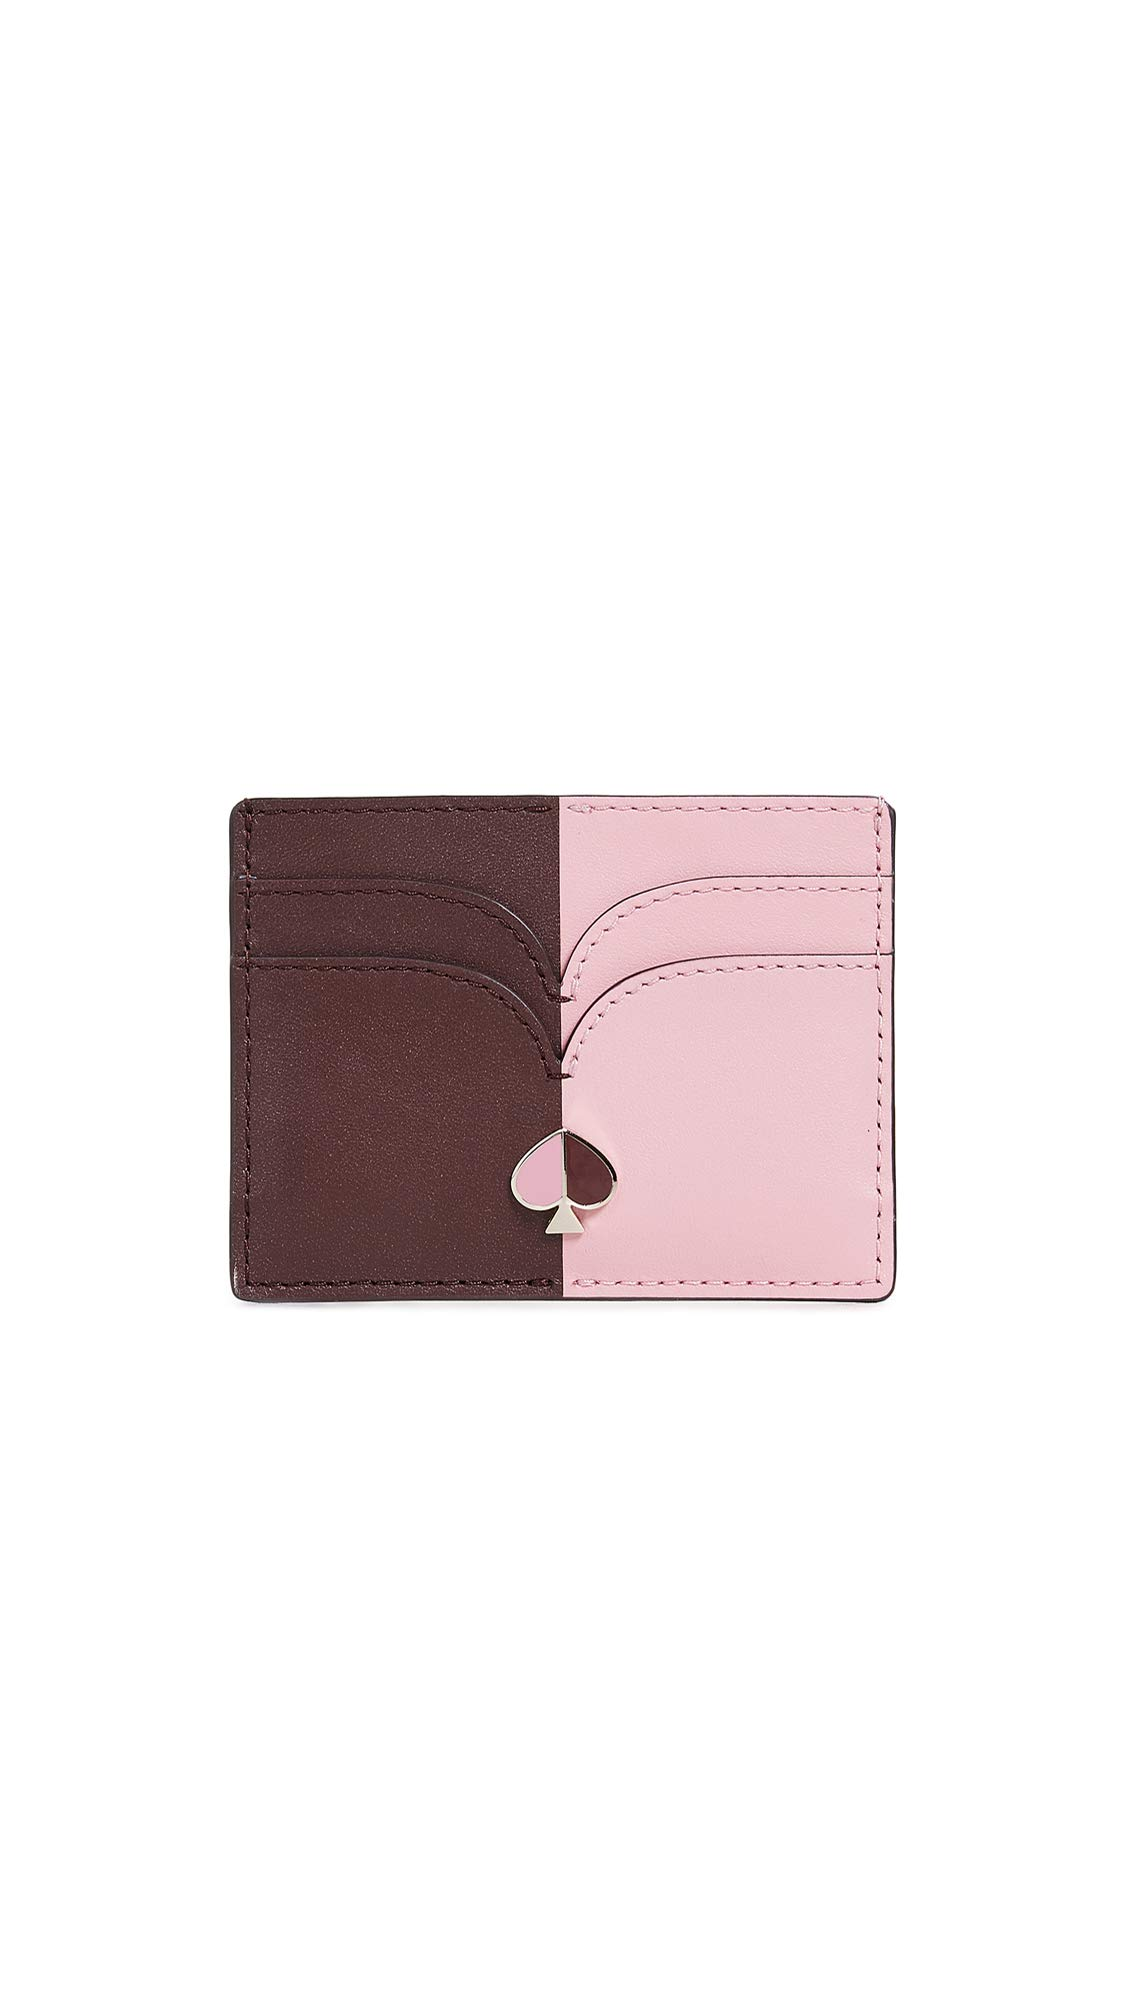 Kate Spade New York Women's Nicola Bicolor Card Holder, Roasted Fig/Rococo Pink, One Size